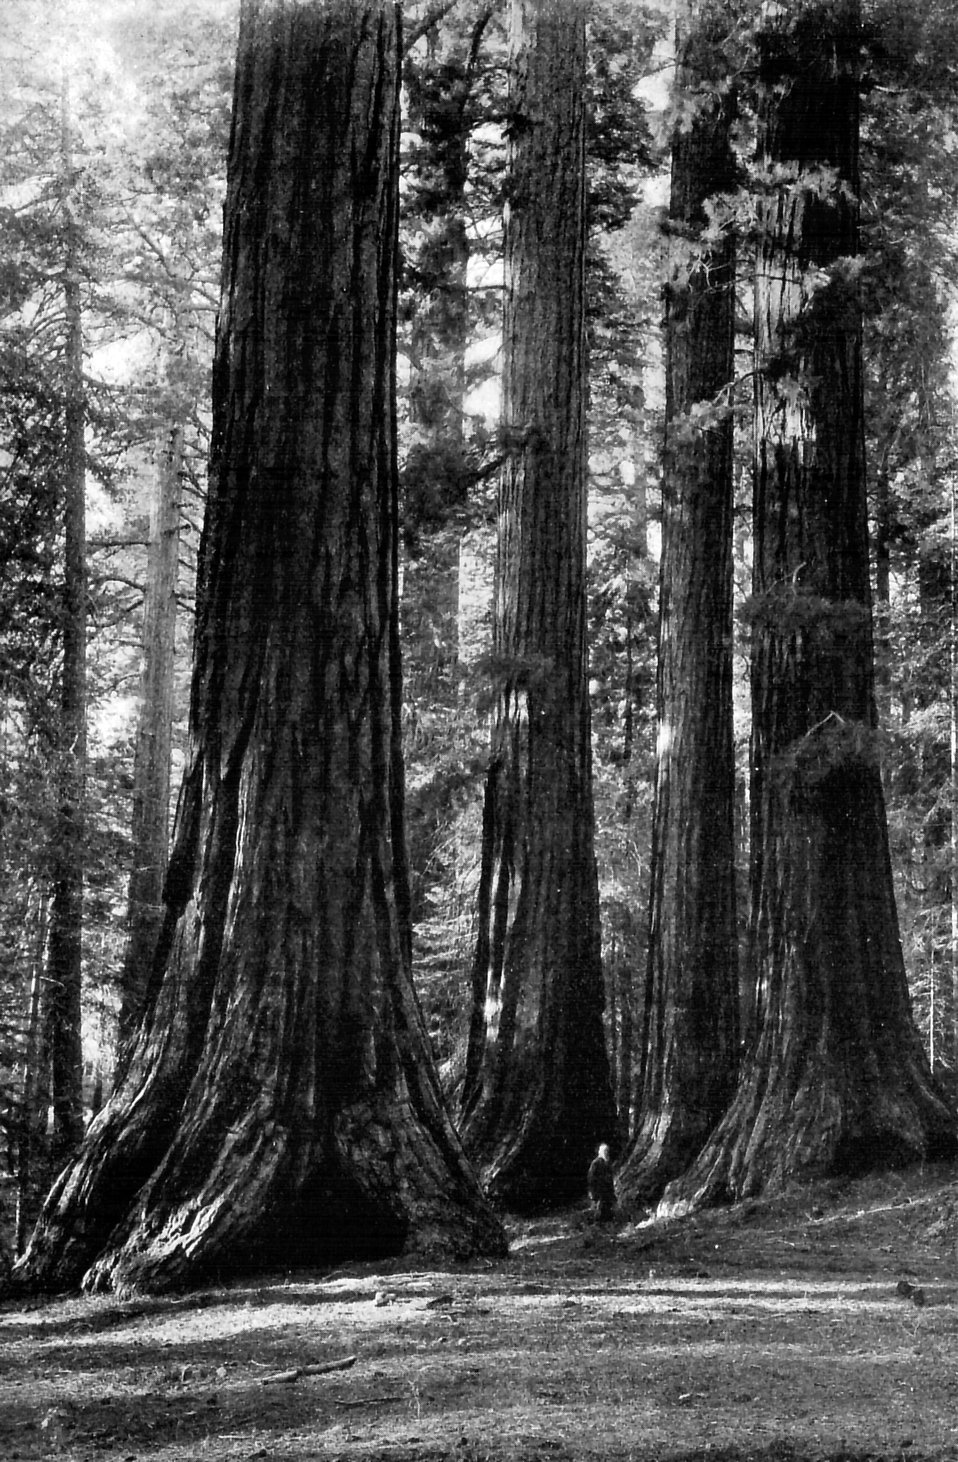 Vintage photo of a man standing by giant sequoia trees : Free Stock Photo